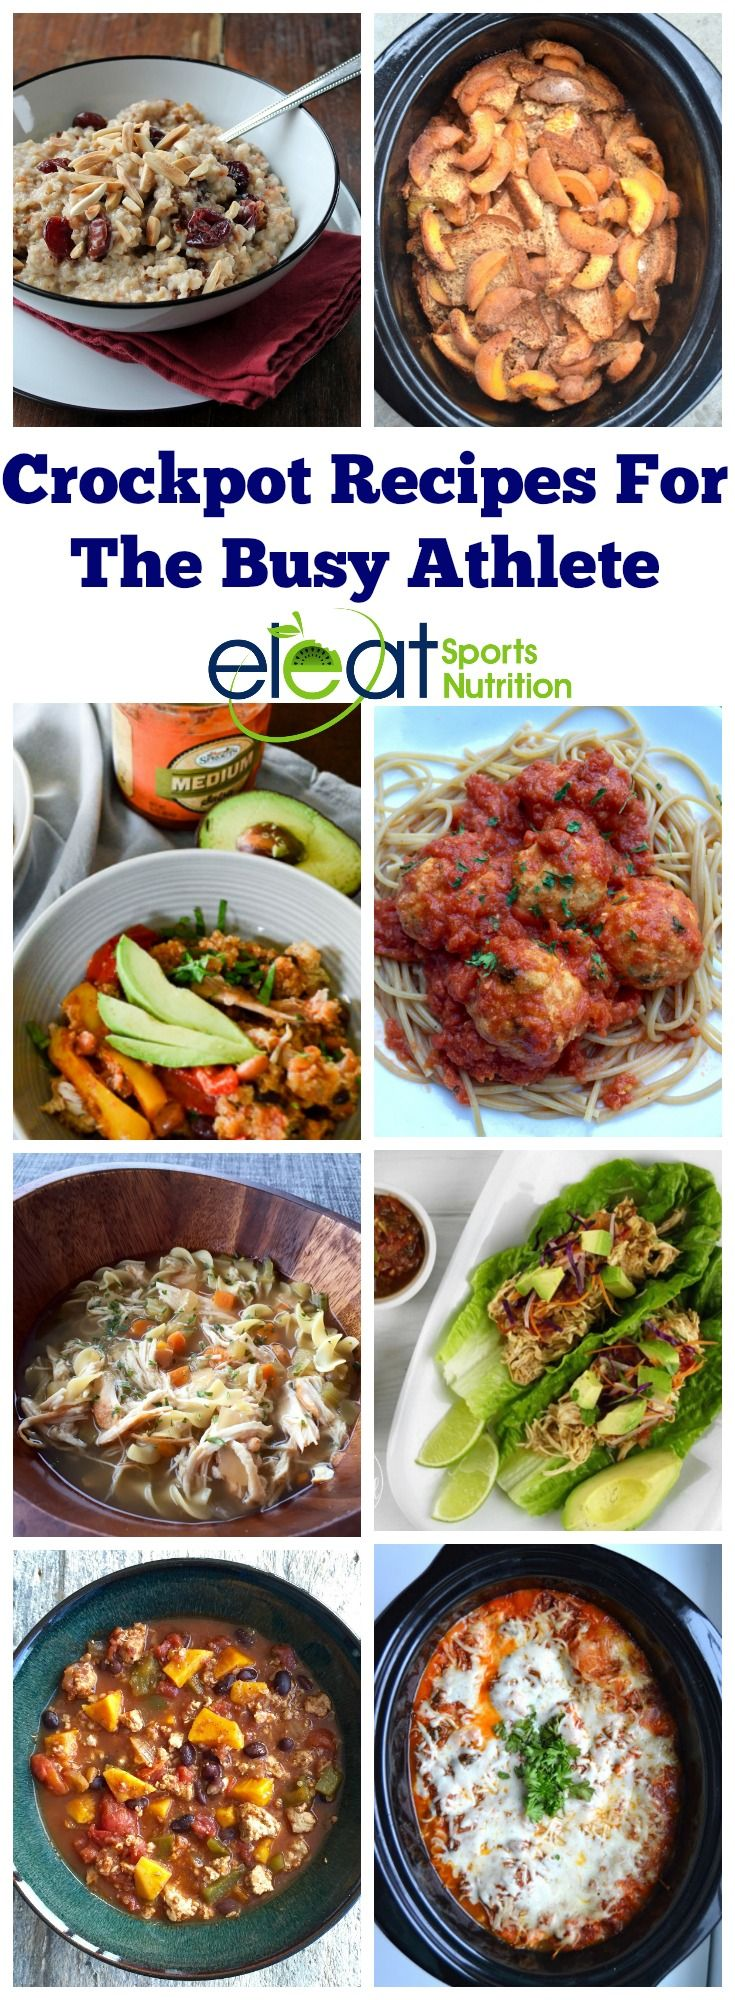 Crockpot Recipes for the Busy Athlete — Eleat Sports Nutrition, LLC